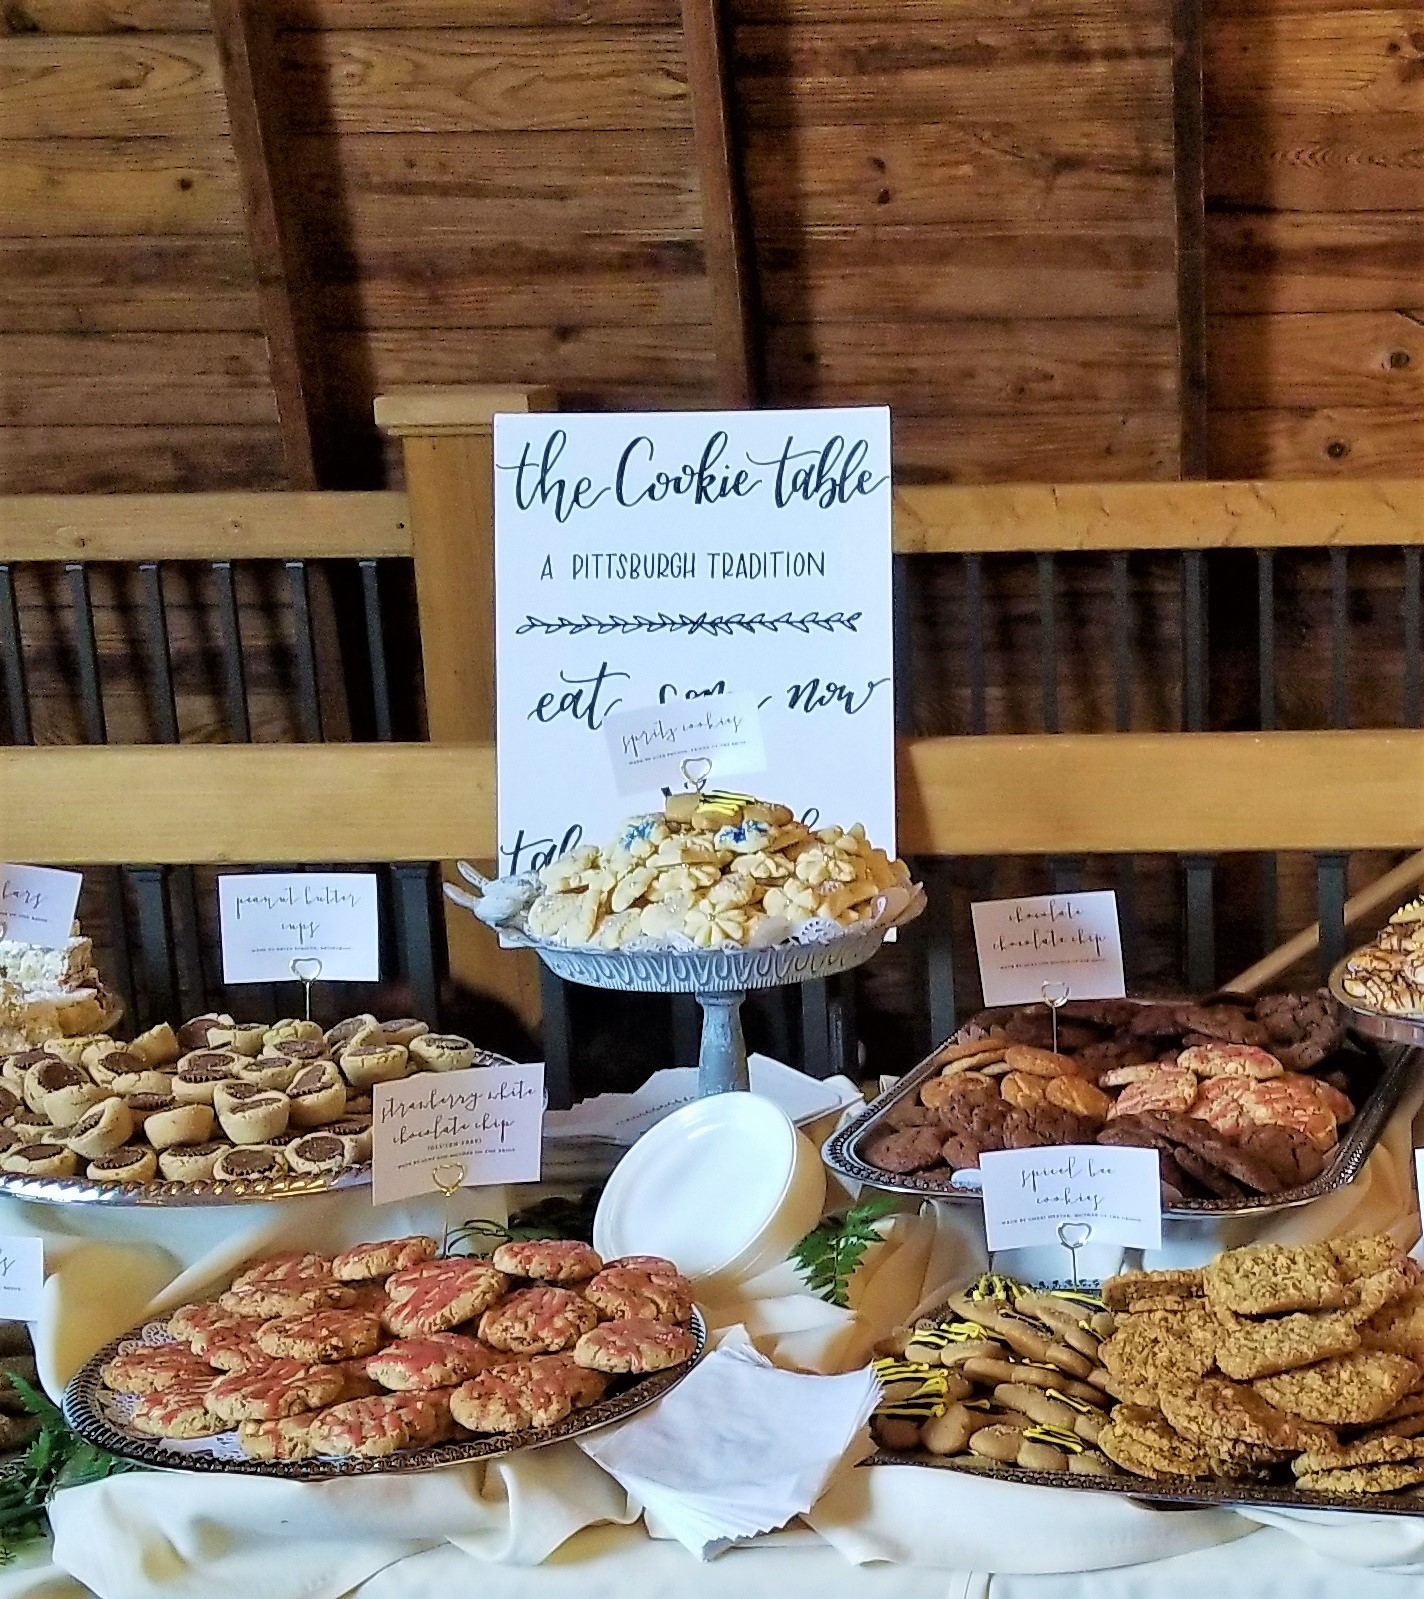 The Cookie Table: A Pittsburgh Tradition